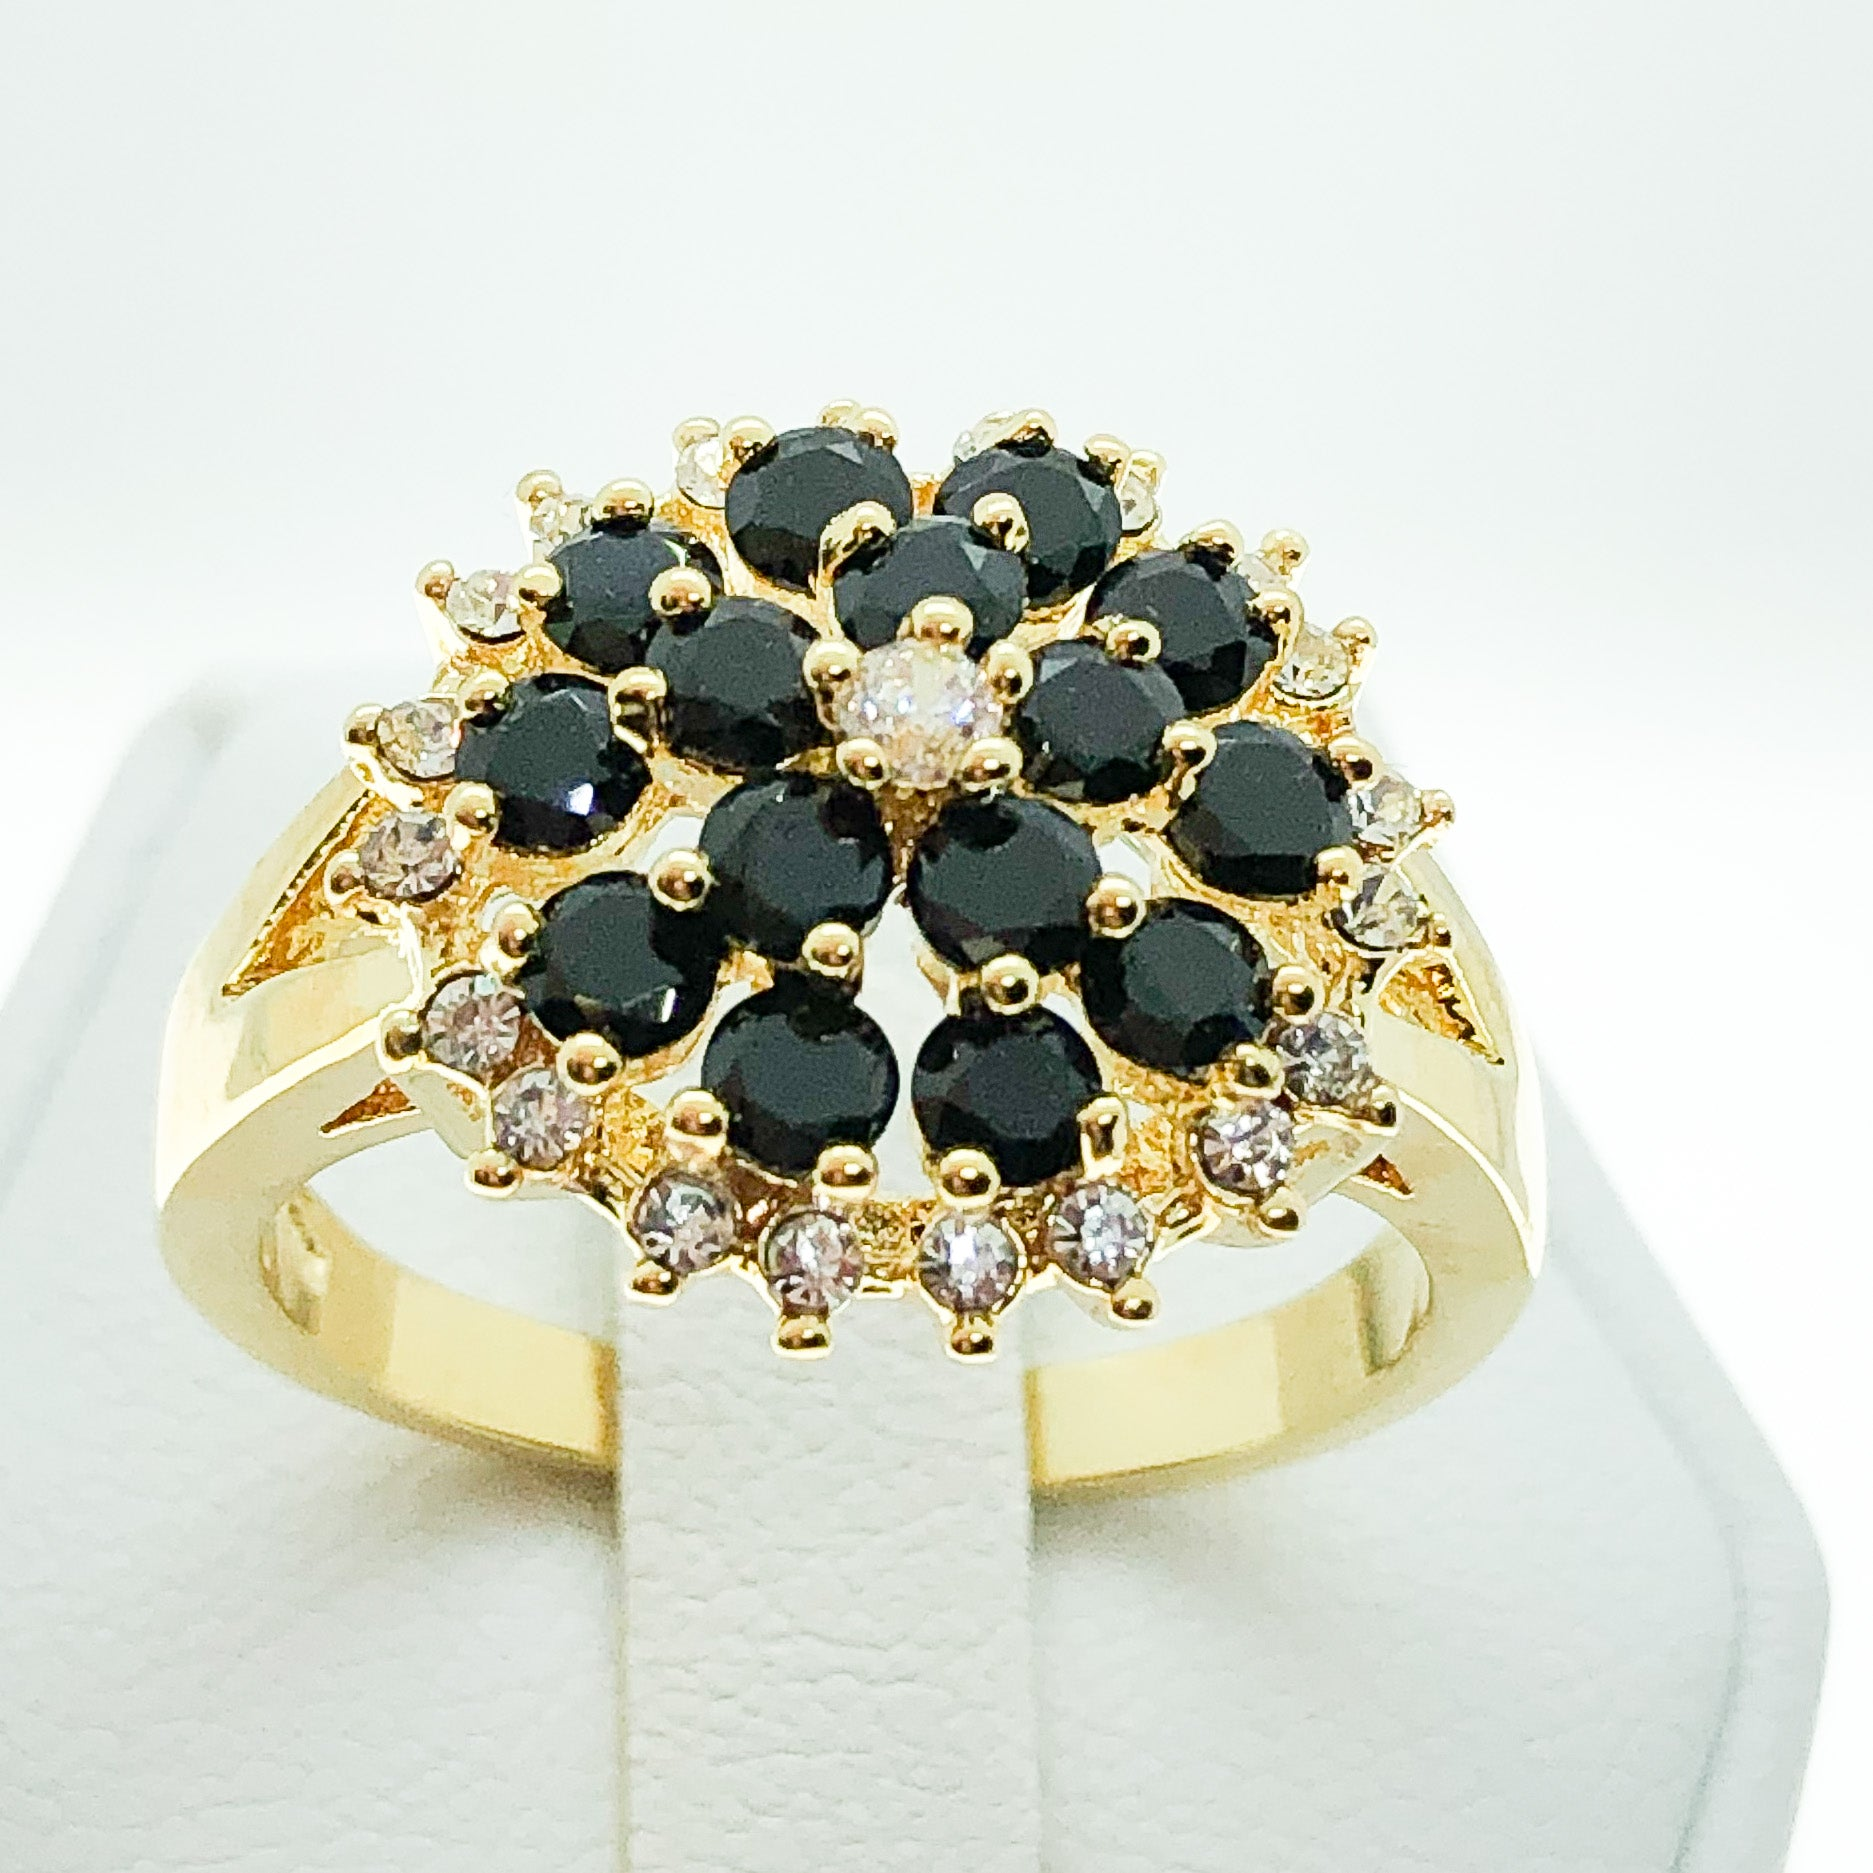 ID:R4717 Women 18K Yellow Gold GF Fashion Jewelry Charming Black and Clear Gemstones Ring Comfortable Daily Wear